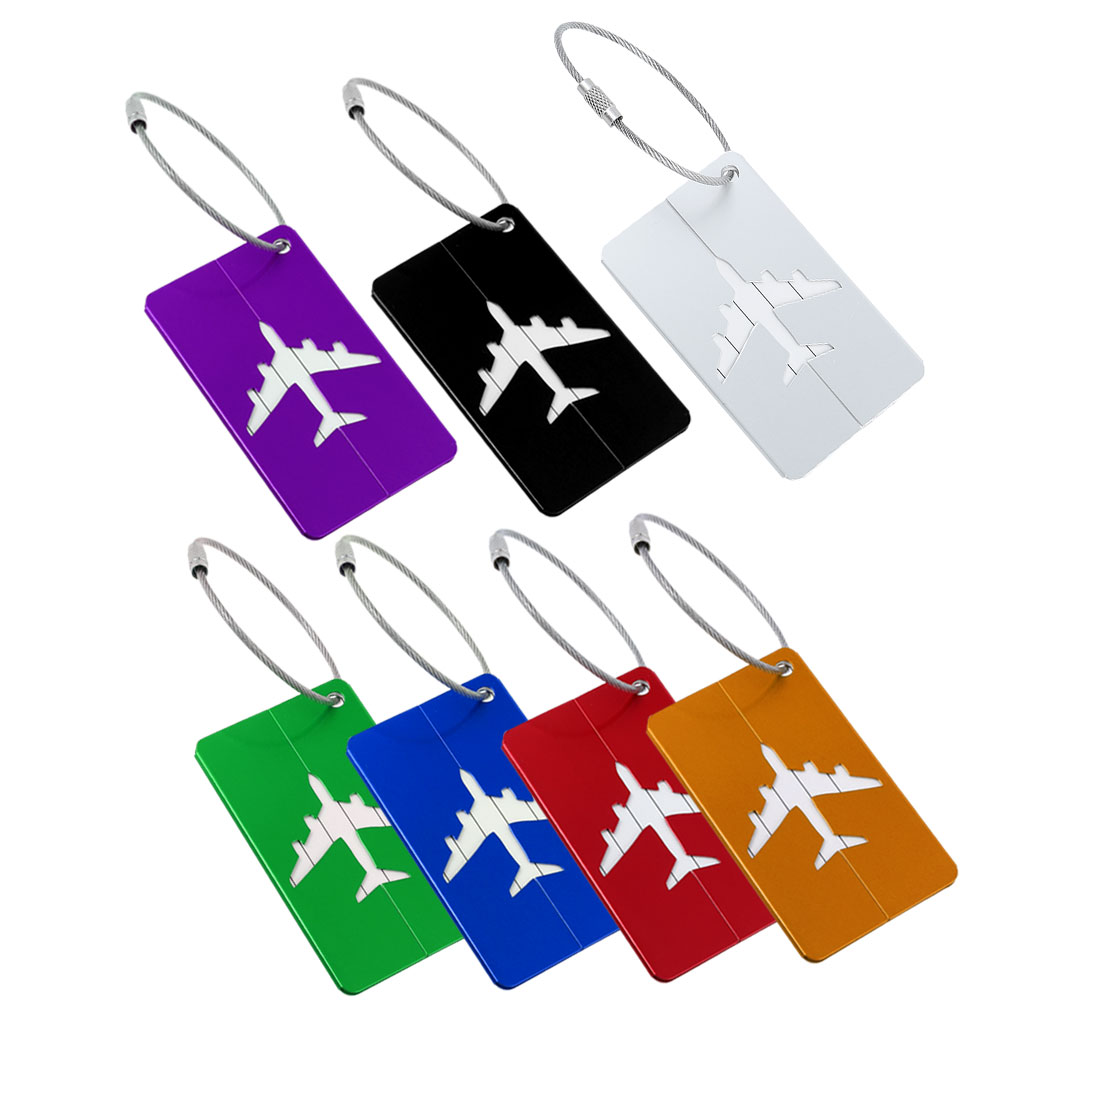 Travel Bag Tags Suitcase Baggage Name Address ID Labels Assorted Color 7pcs